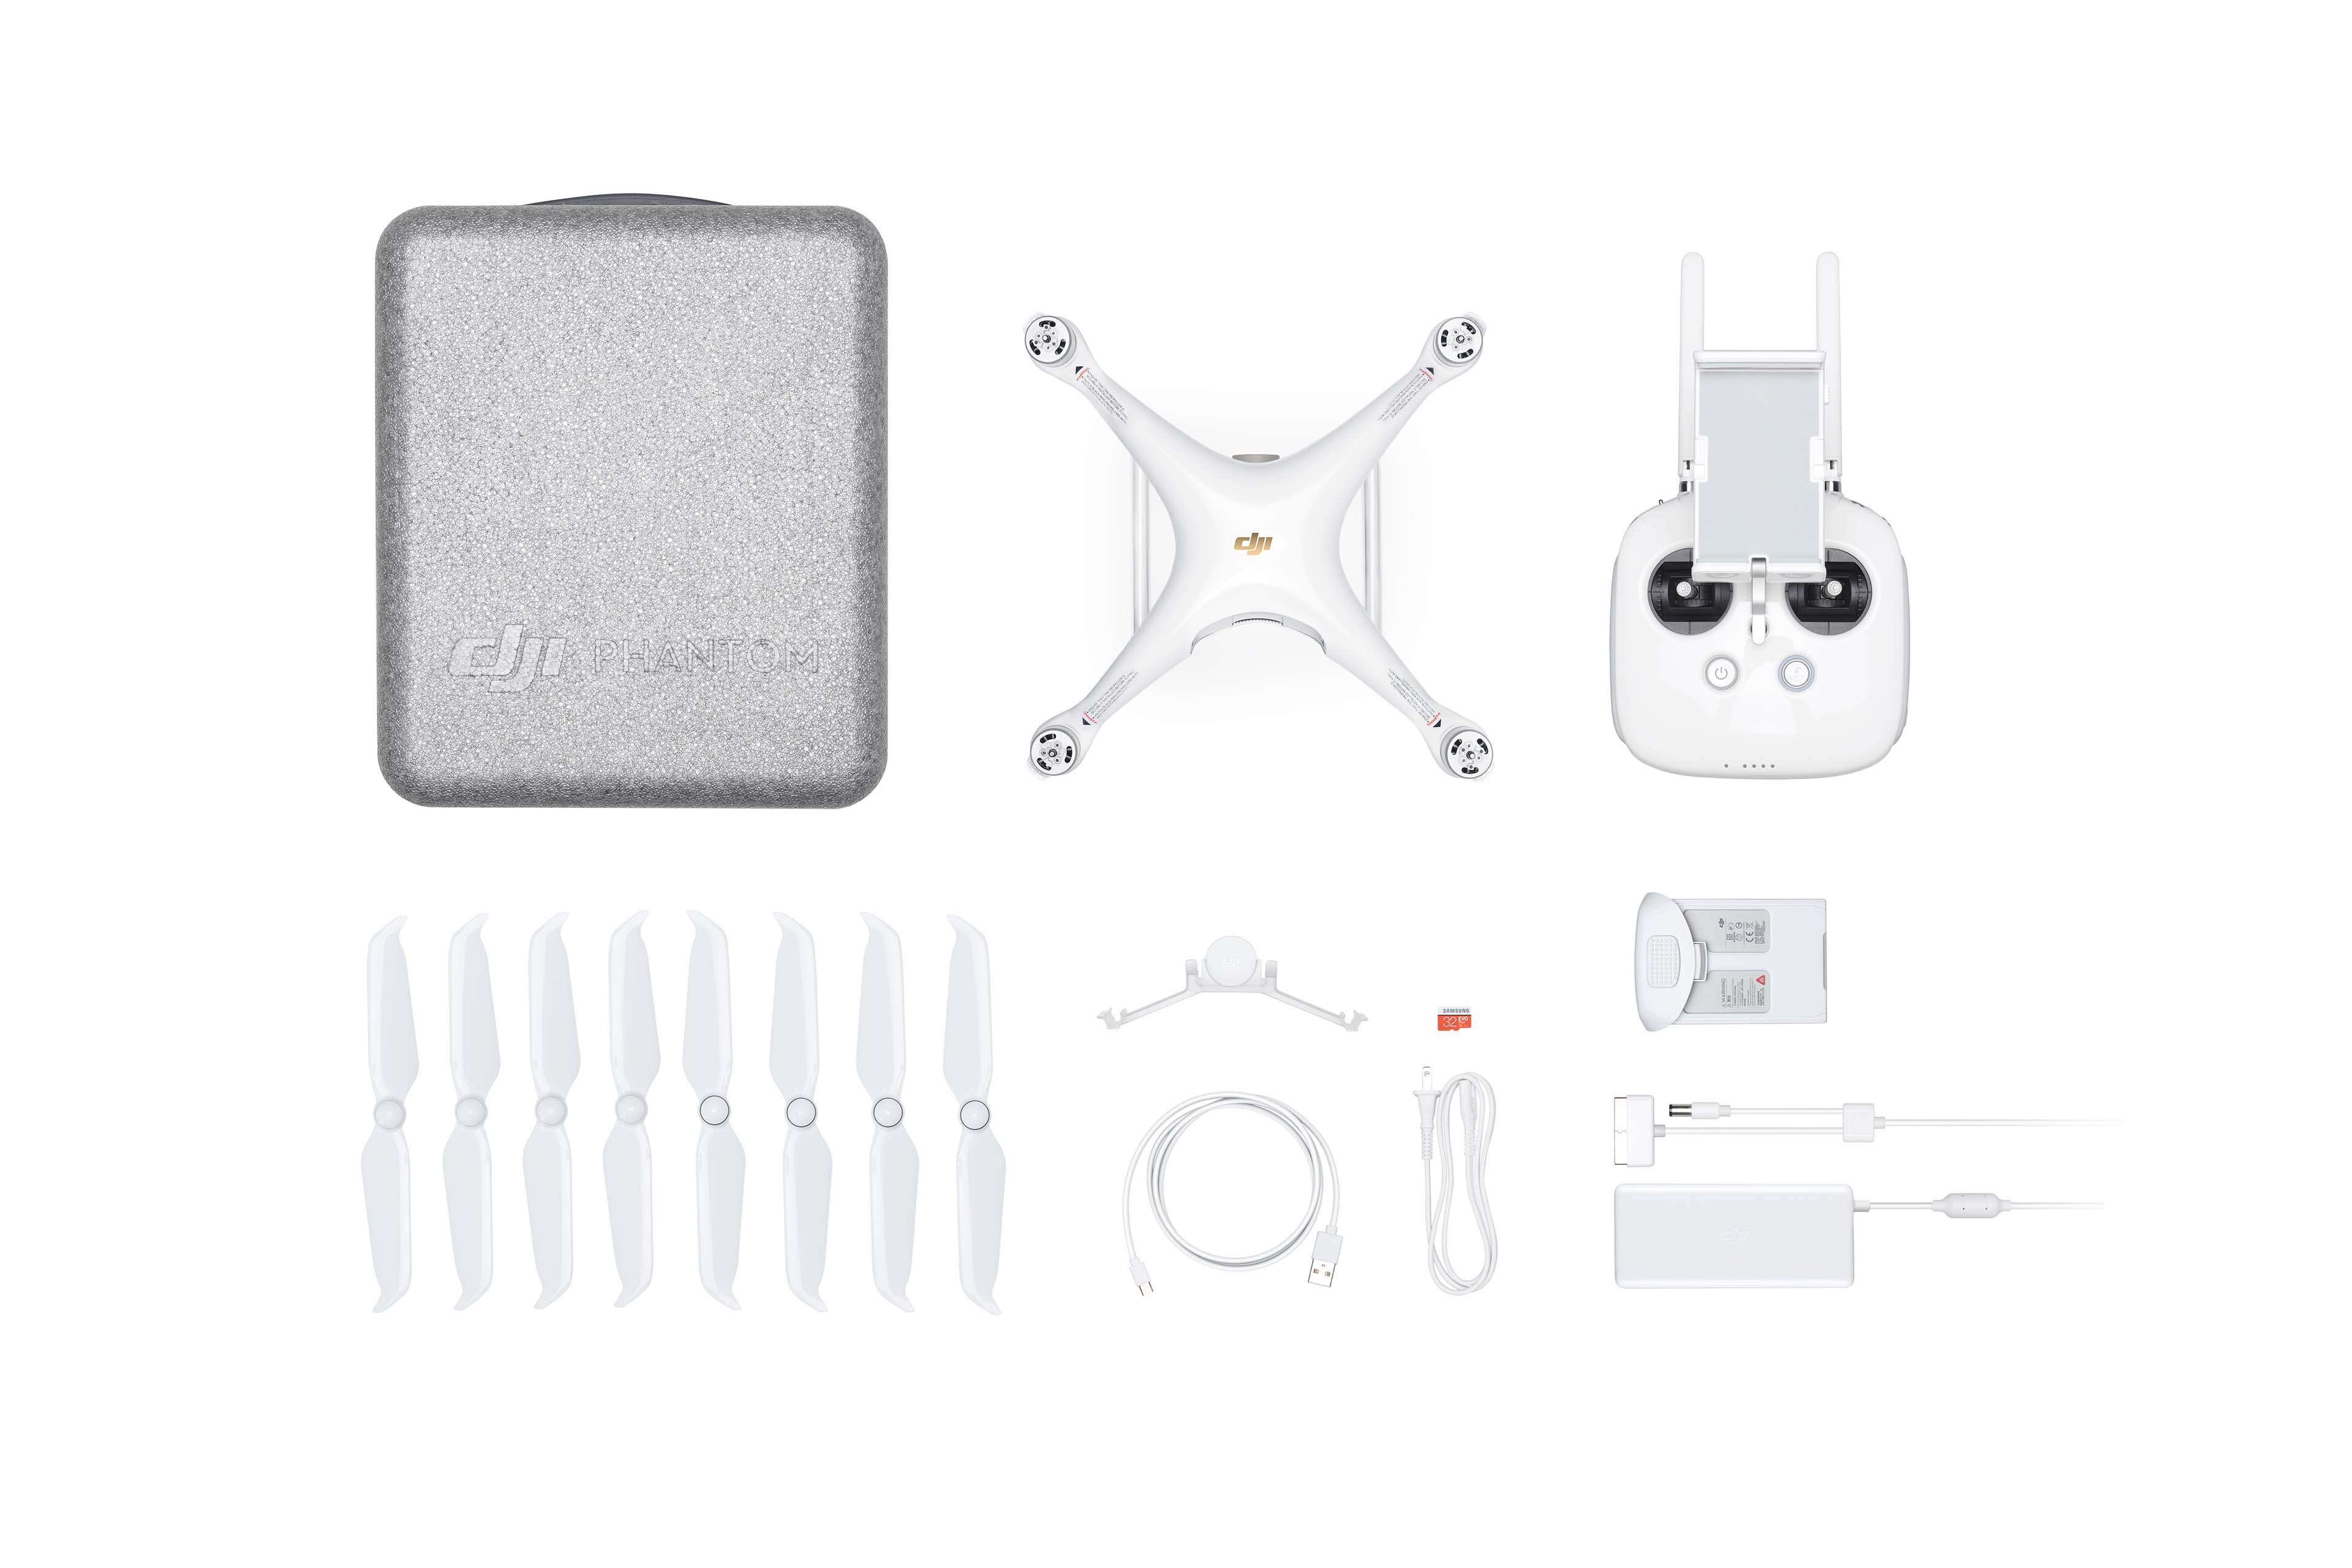 everything you got when you buy Phantom 4 Pro V2.0